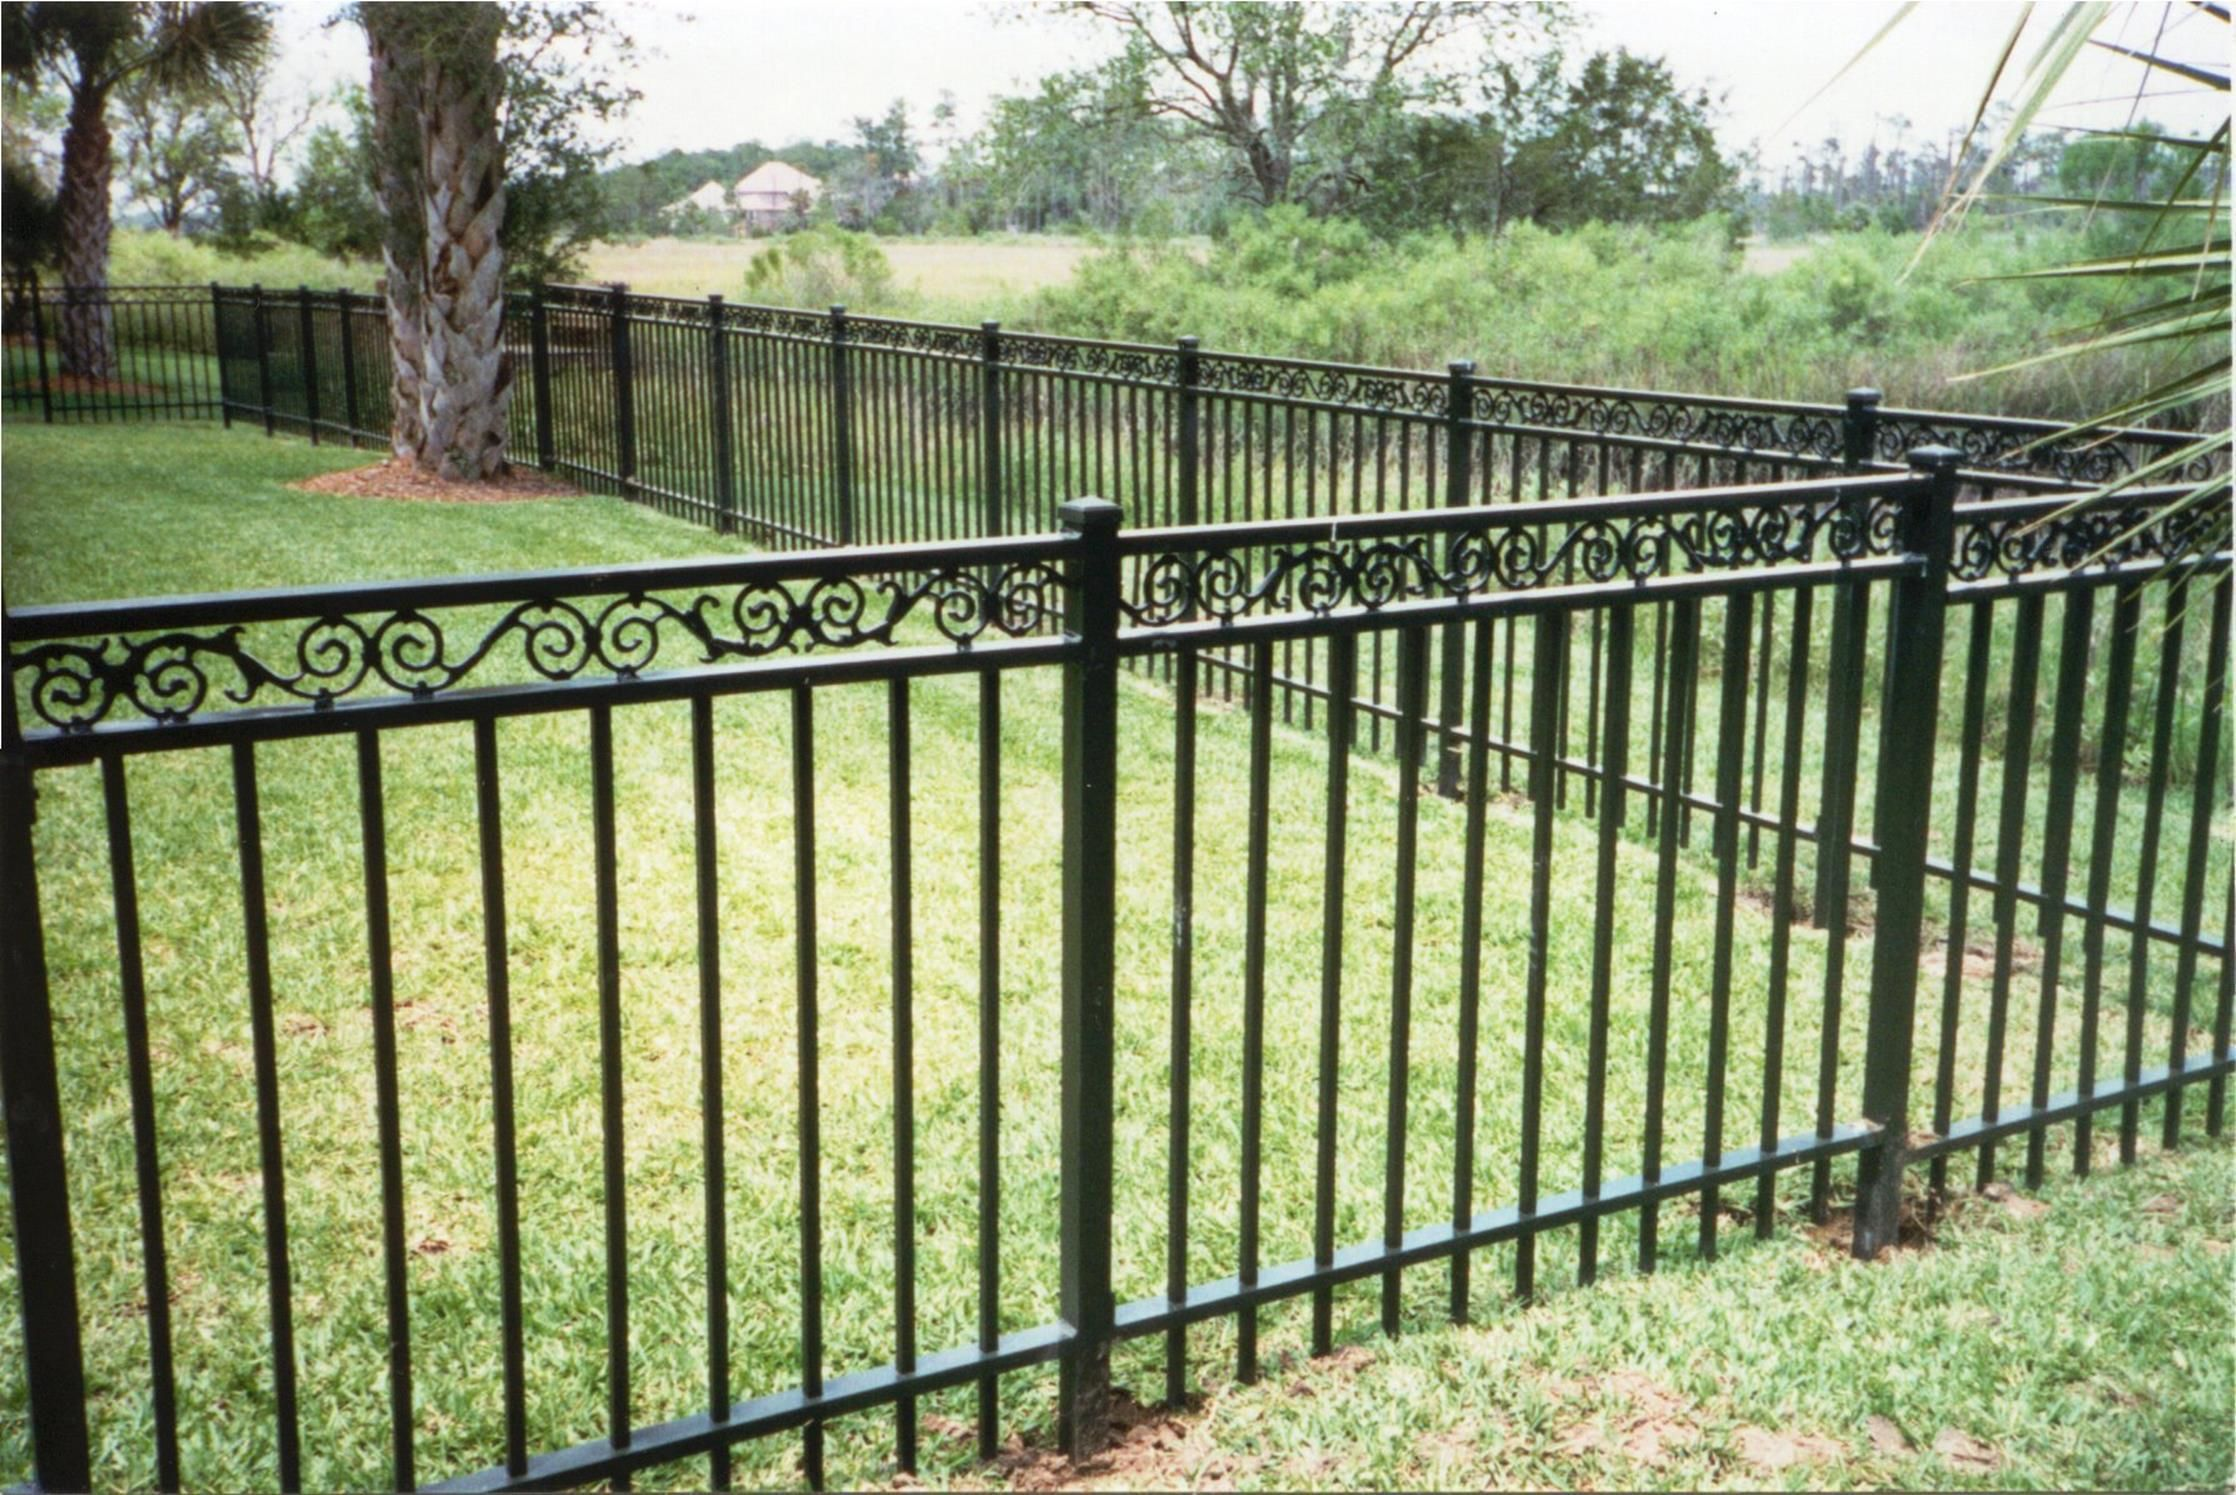 Inexpensive Decorative Vegetable Garden Fencing Ideas 16 With